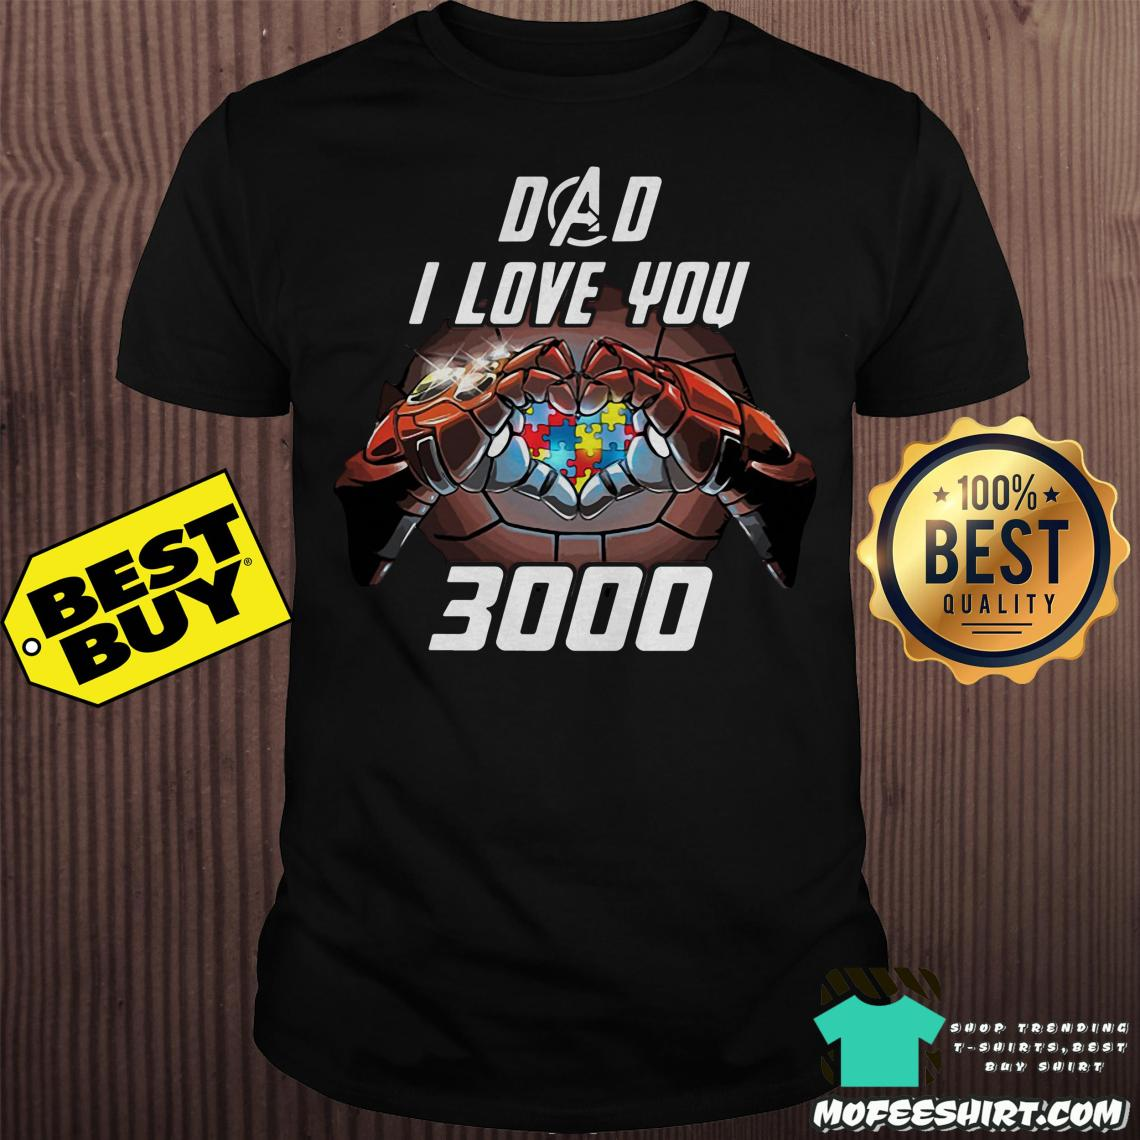 Download Sale 20% Official Dad I love you 3000 Iron man shirt